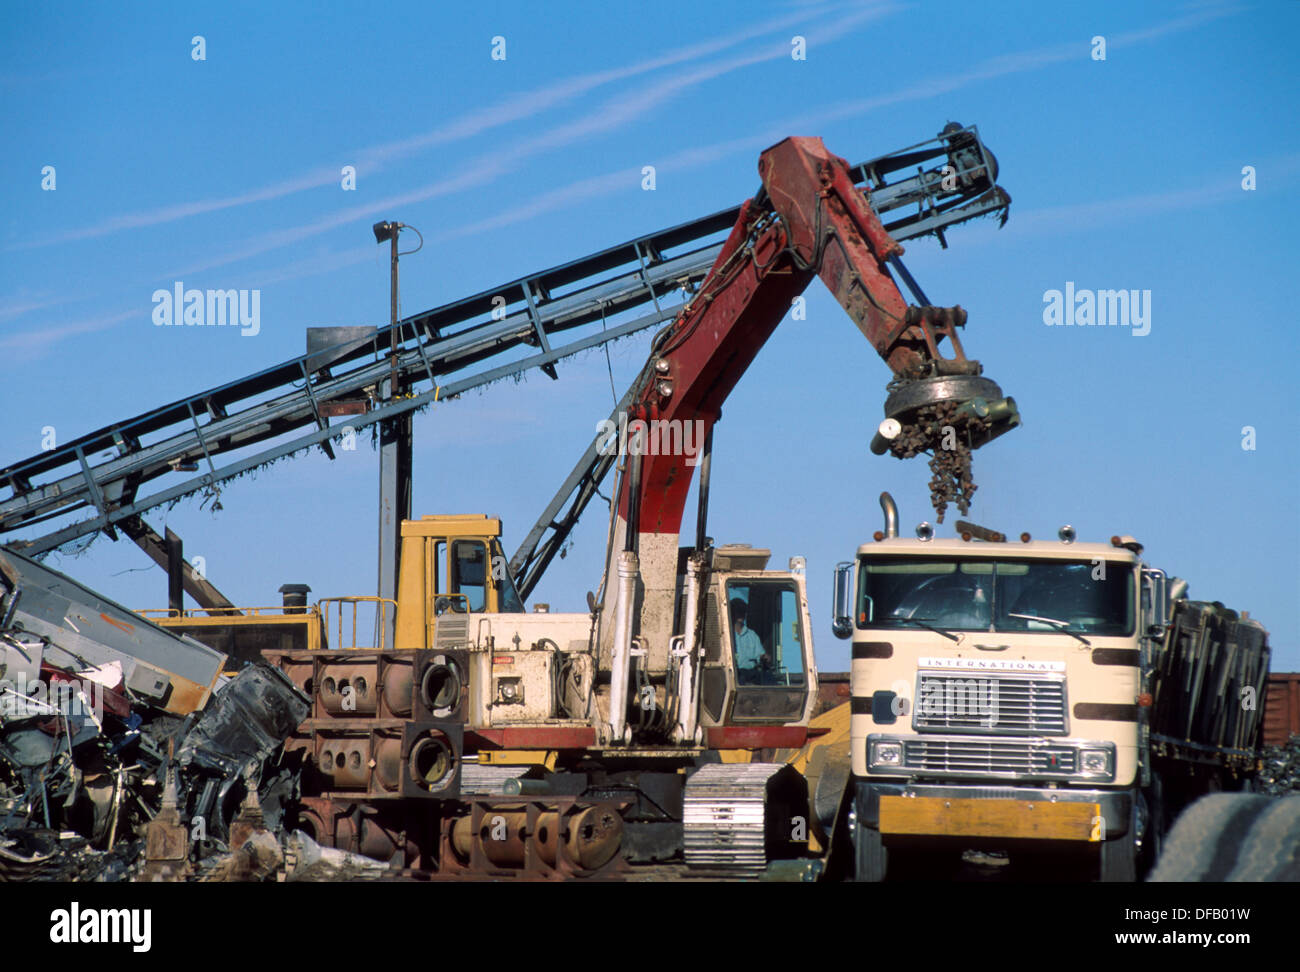 Metal recycling facility - Stock Image